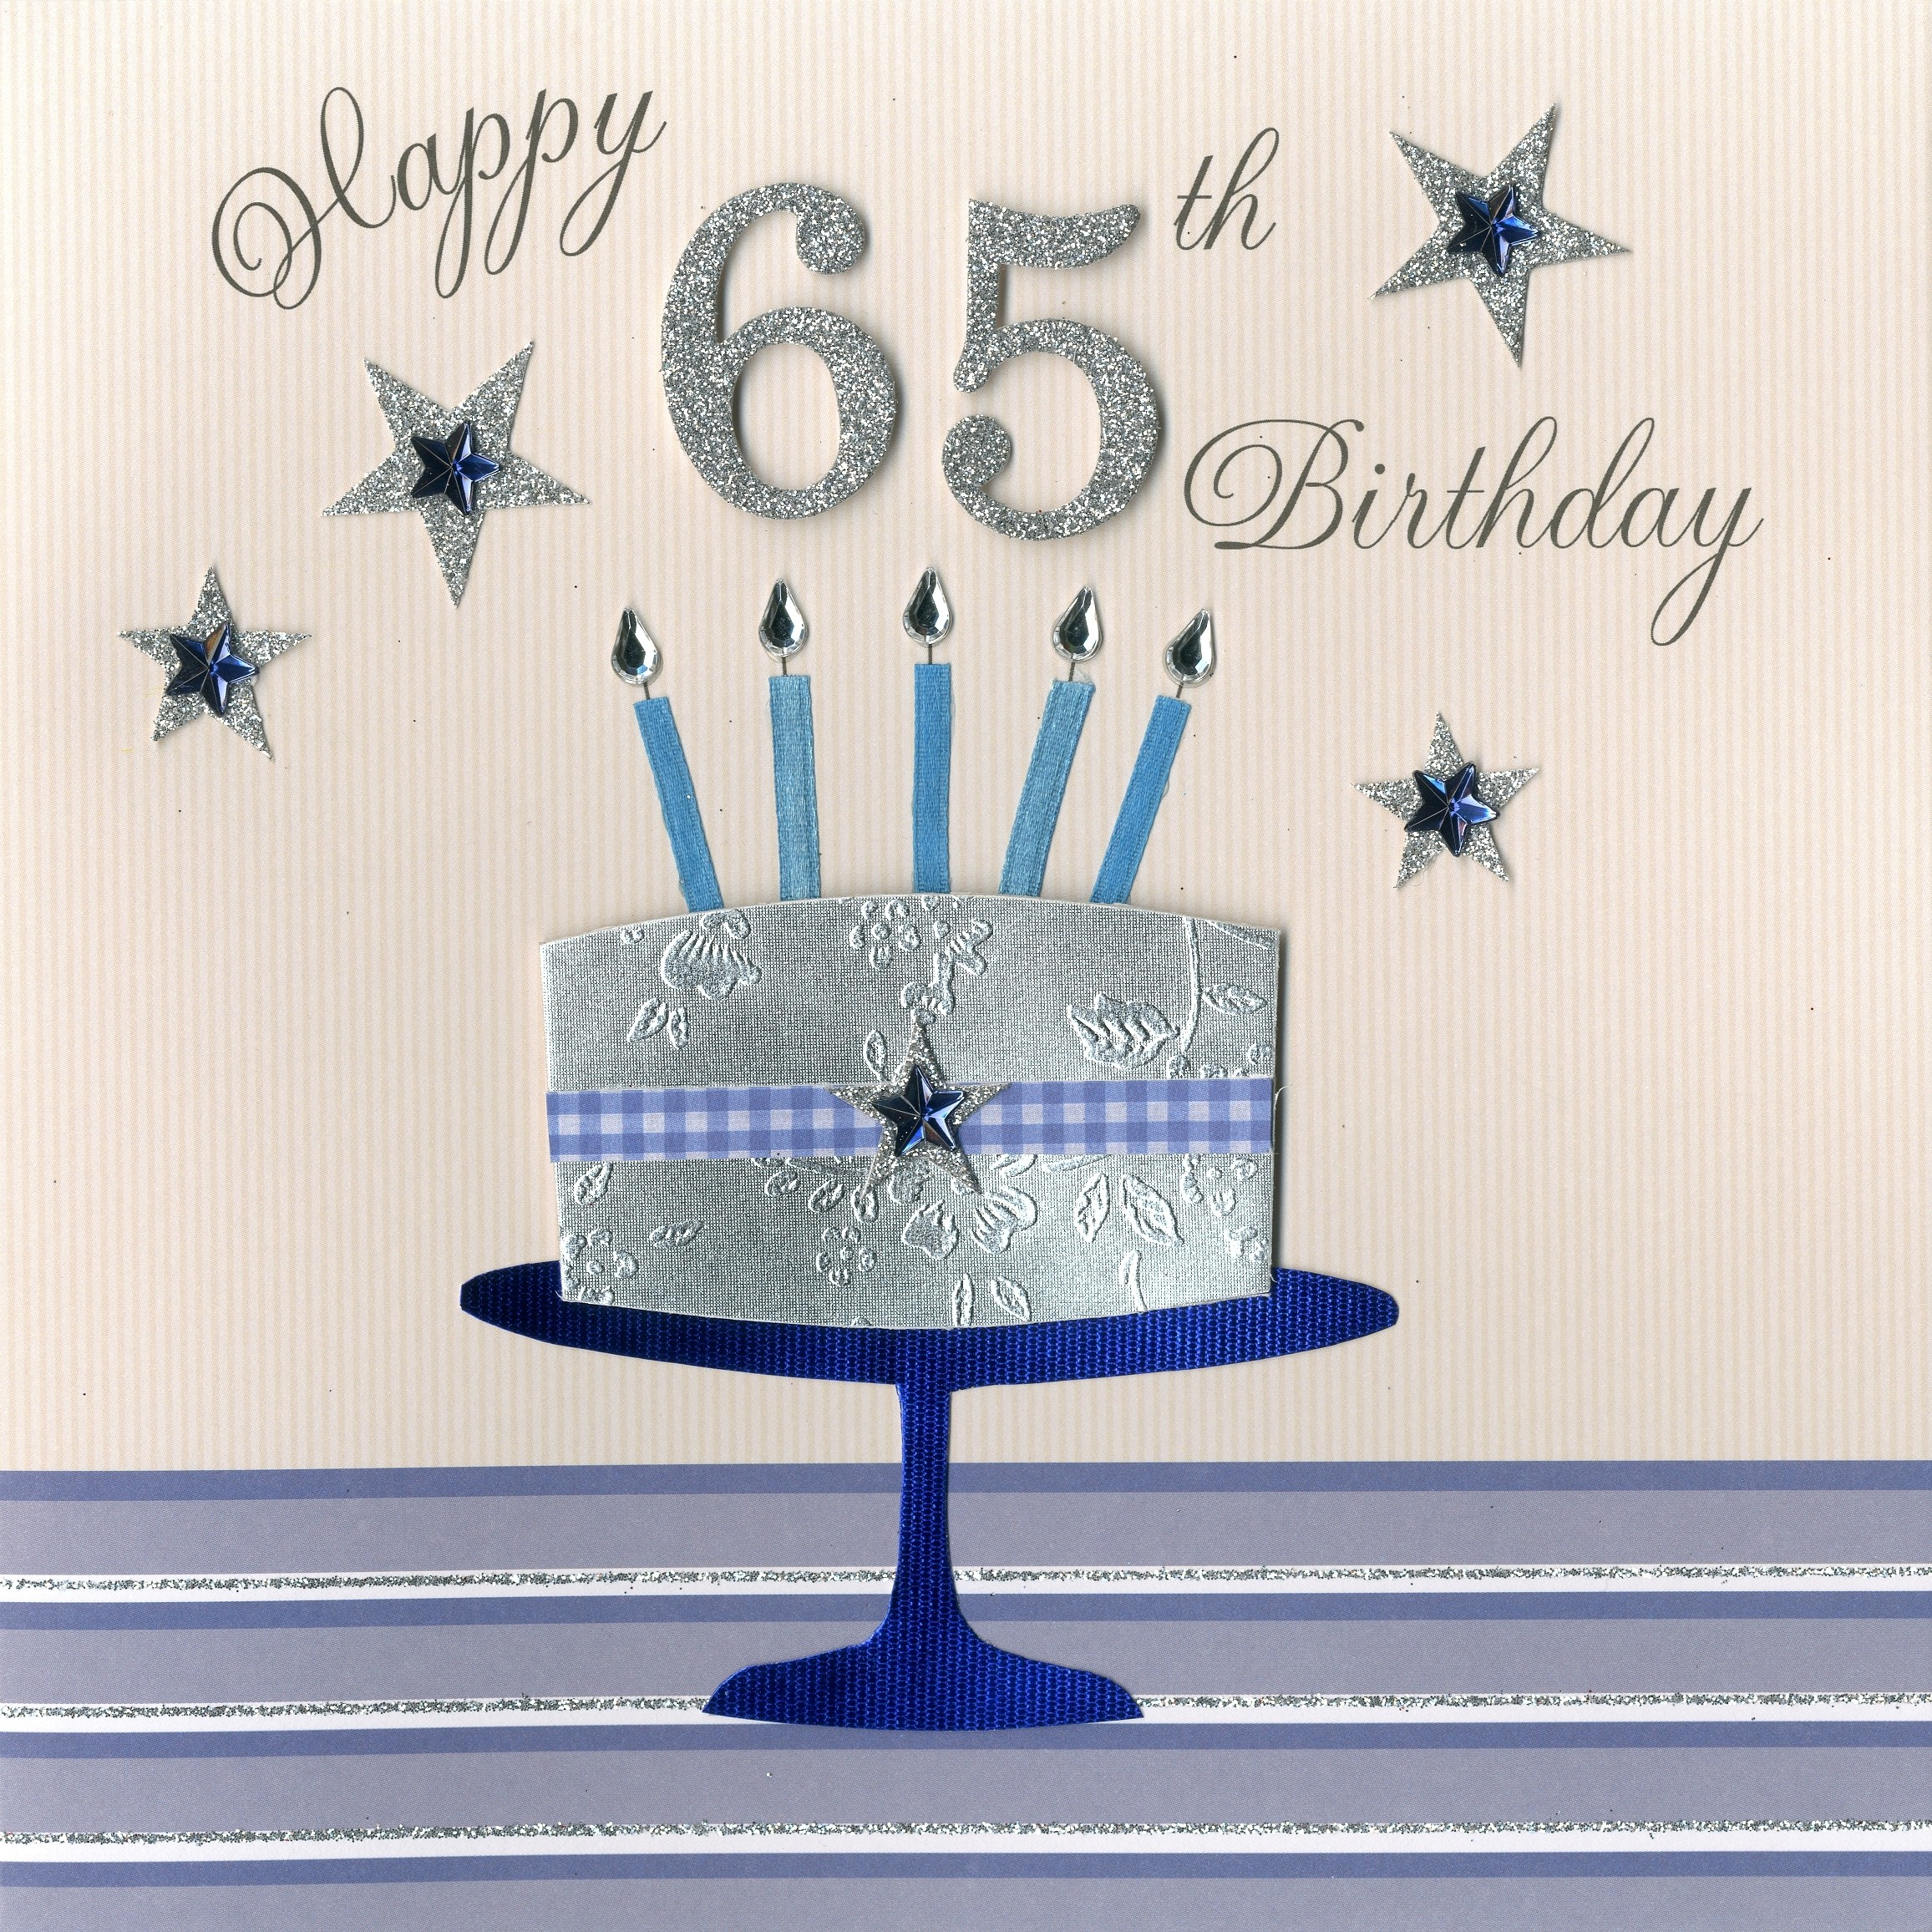 Happy 65th Birthday Cake Sorry Out Of Stock Cardella